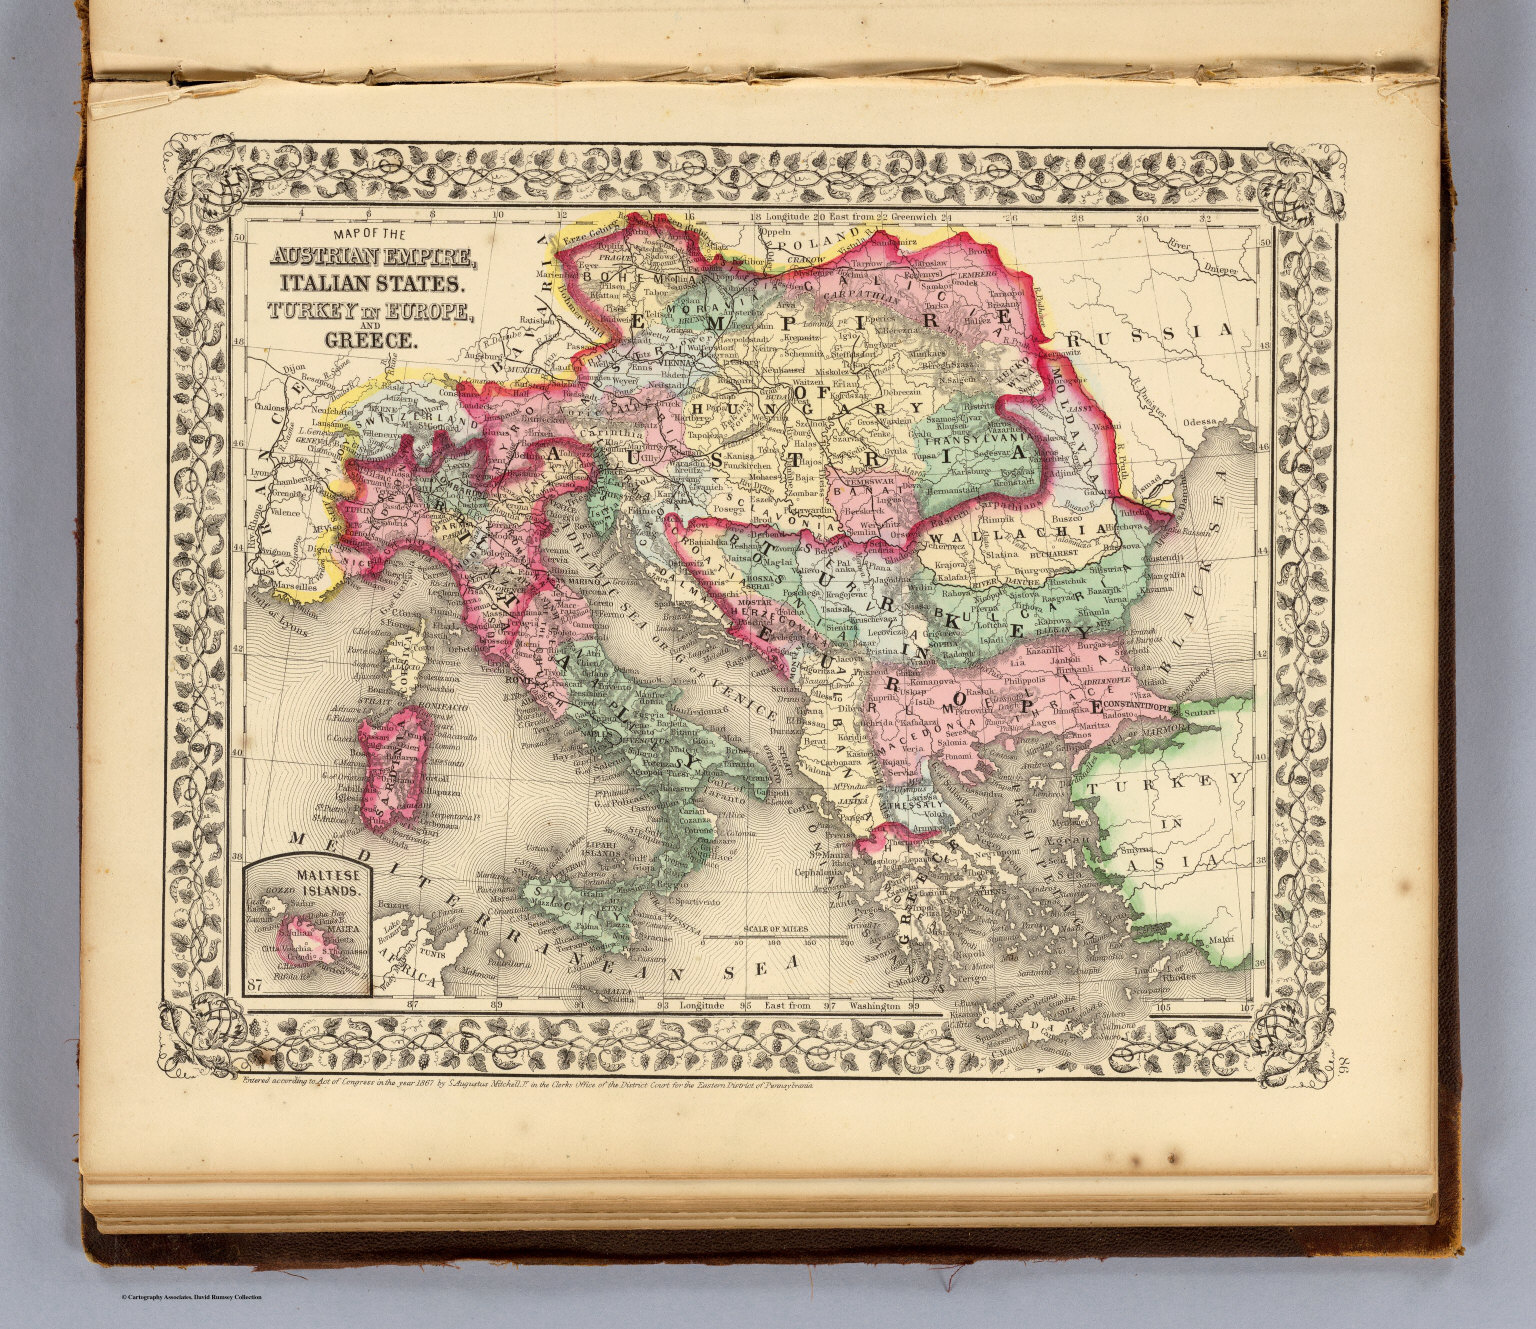 Austrian empire italy turkey in europe greece mitchell samuel austrian empire italy turkey in europe greece mitchell samuel augustus 1870 gumiabroncs Images